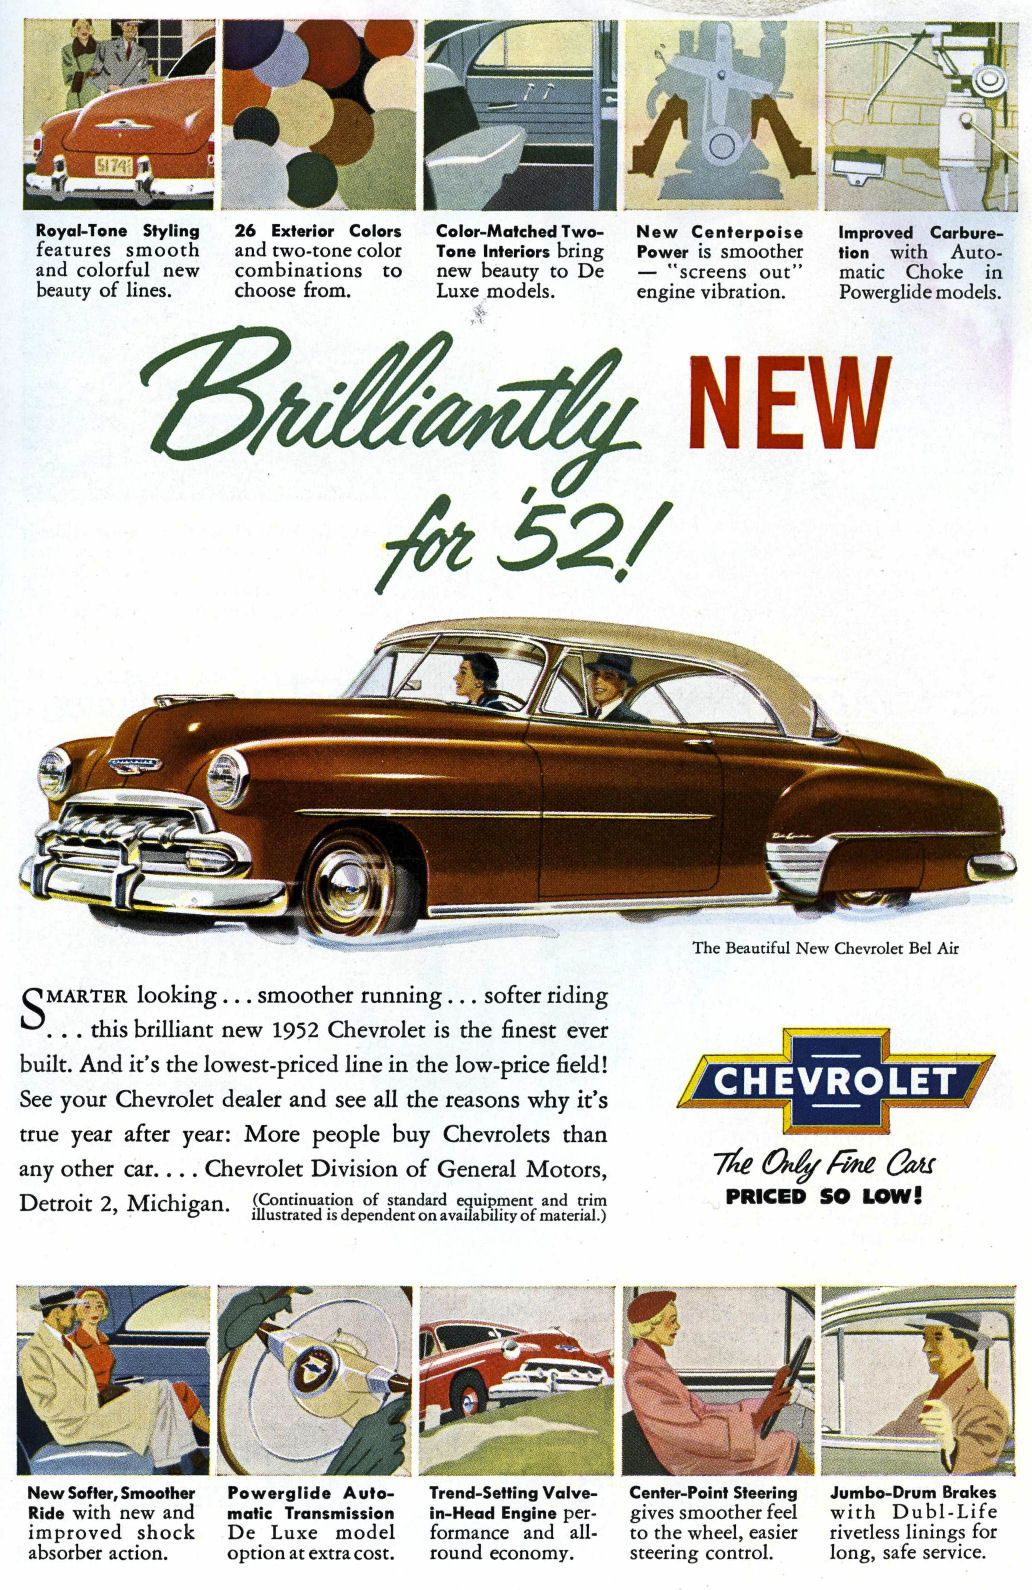 All Chevy 1952 chevy styleline parts : 1952 Chevy Bel Air | US Classic Car Brochures Pics & Ads ...